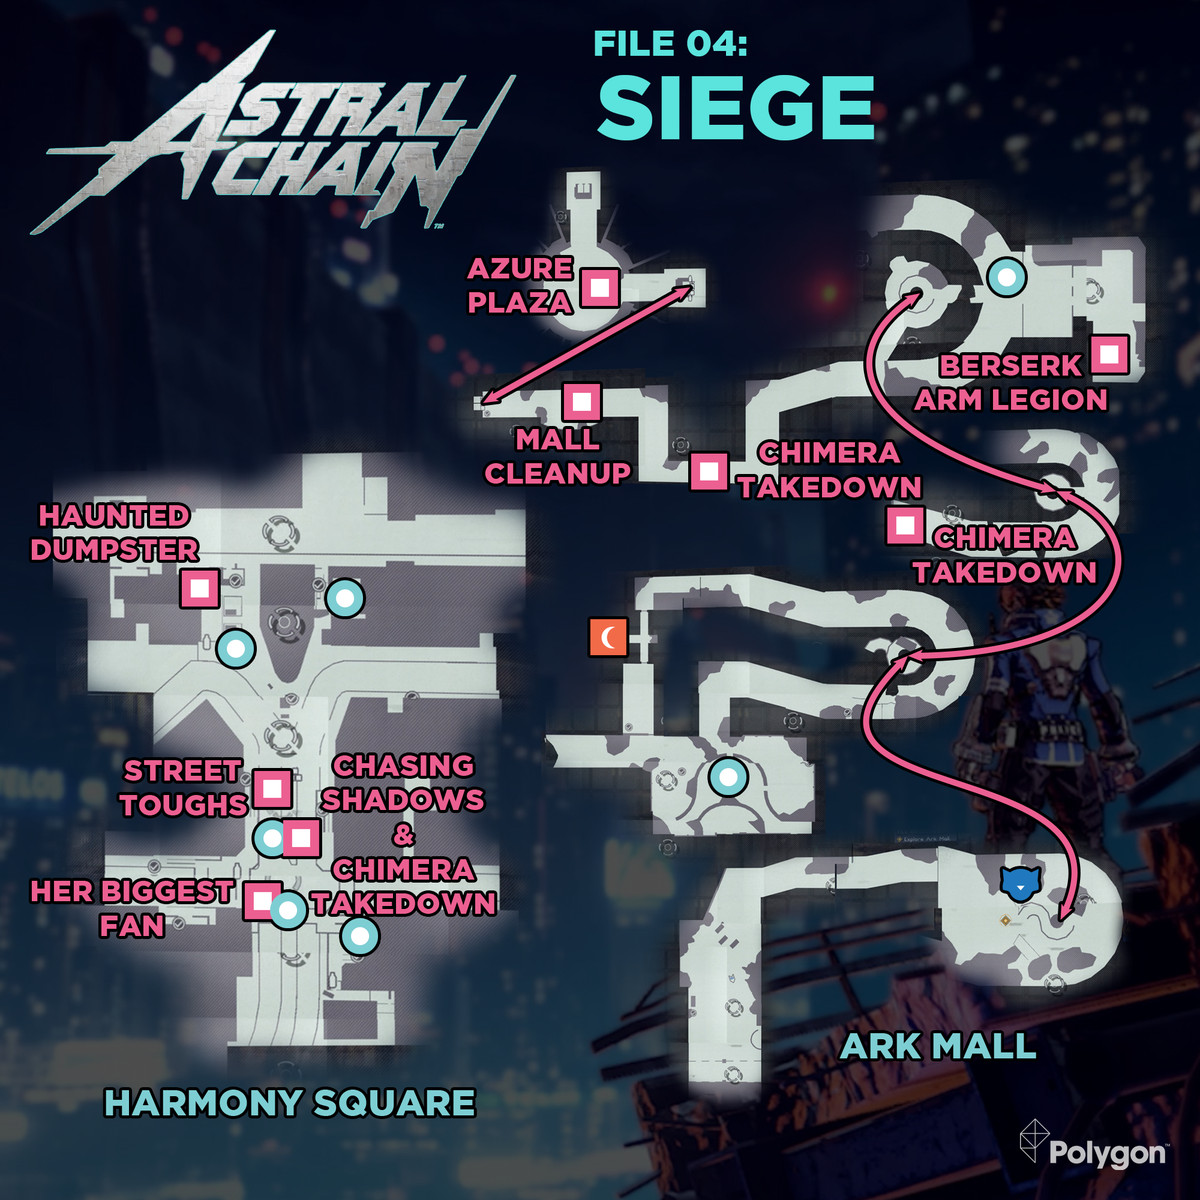 Astral Chain guide: File 04 Siege cases, cats, and bathroom